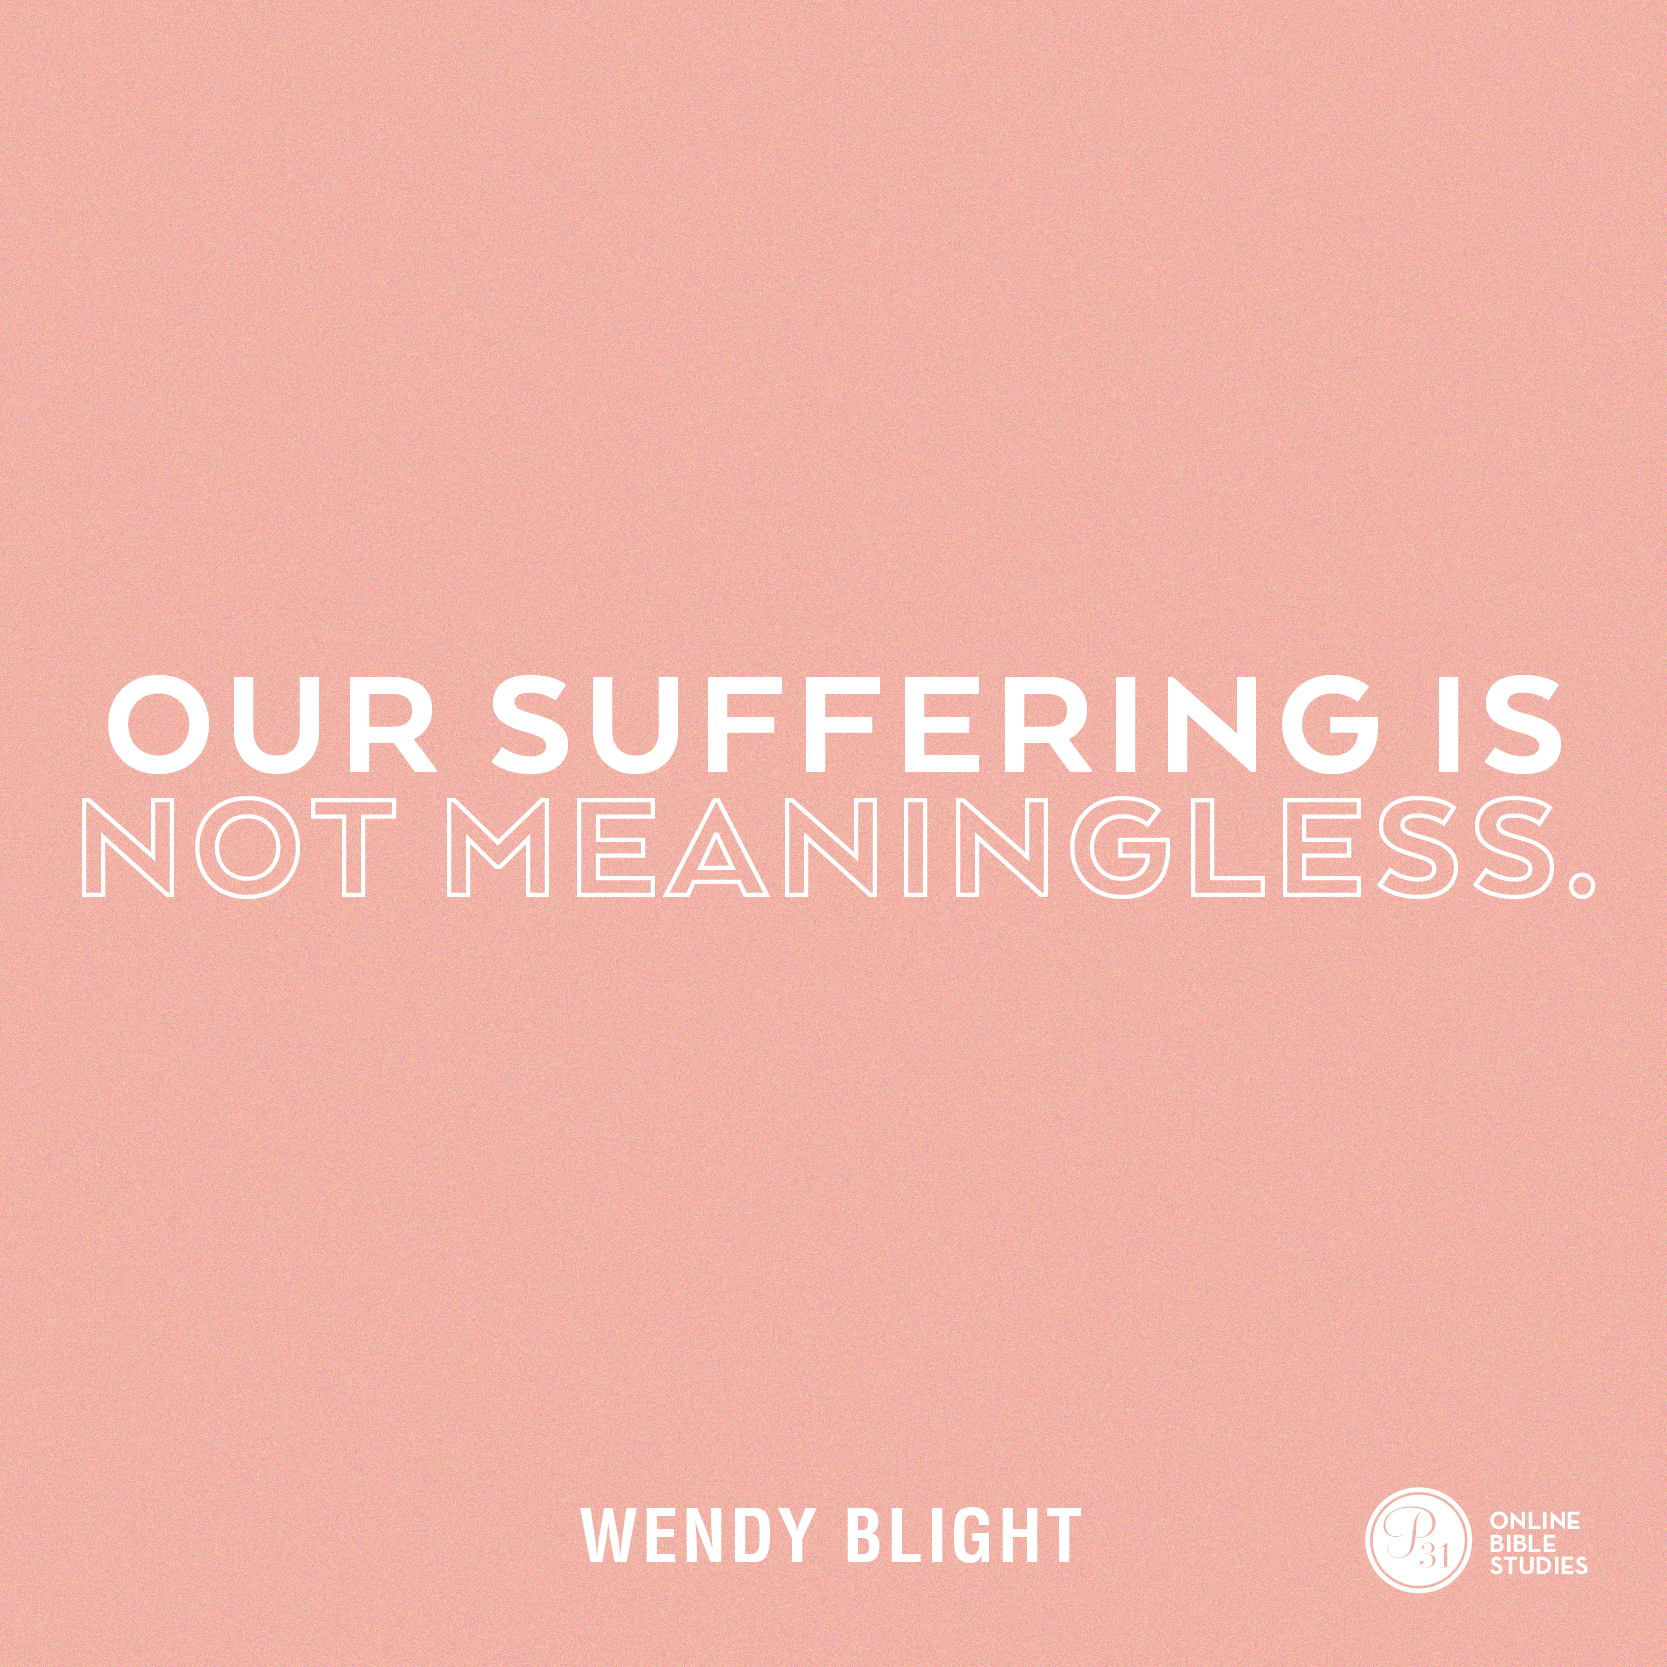 """""""Our Suffering in not Meaningless."""" - Wendy Blight  #HiddenJoyBook 